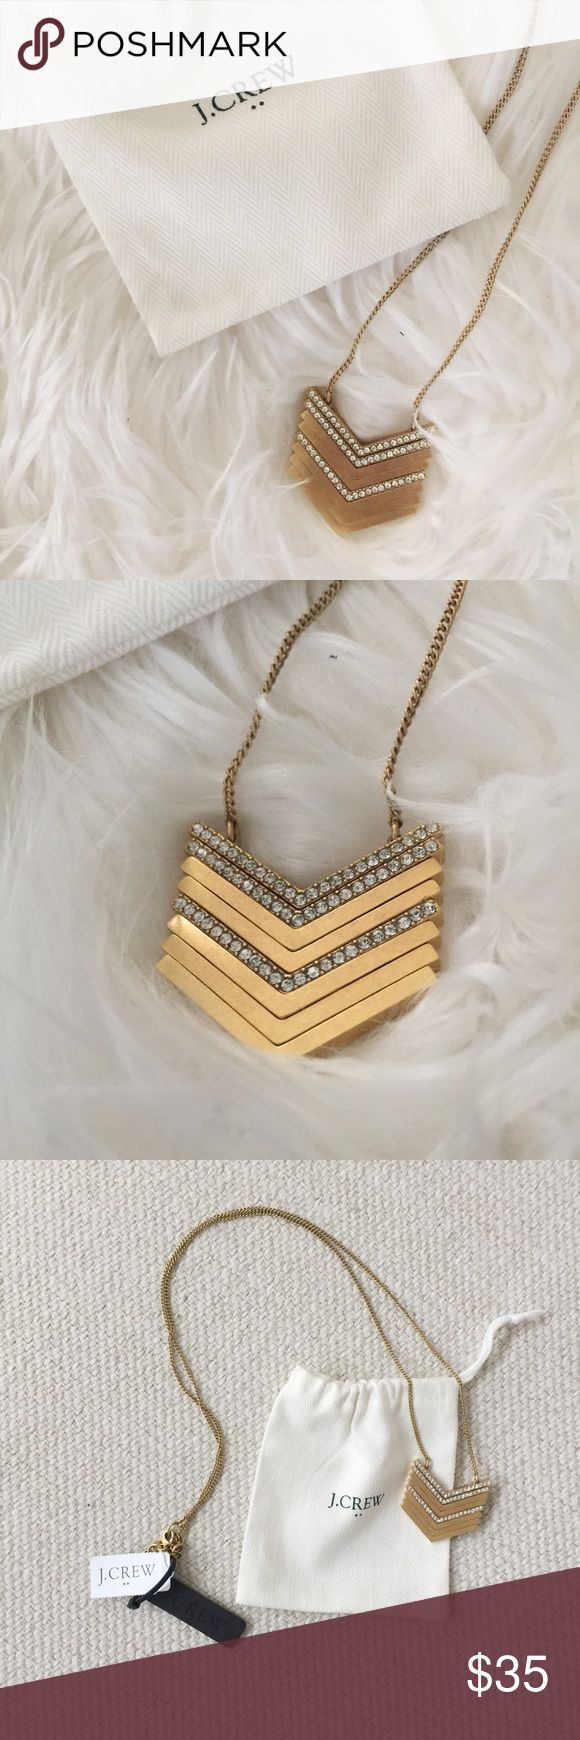 J. Crew Chevron Necklace NWT J. Crew gold brushed Chevron necklace. Comes with pouch. No trades. Poshmark transactions only :) J. Crew Jewelry Necklaces